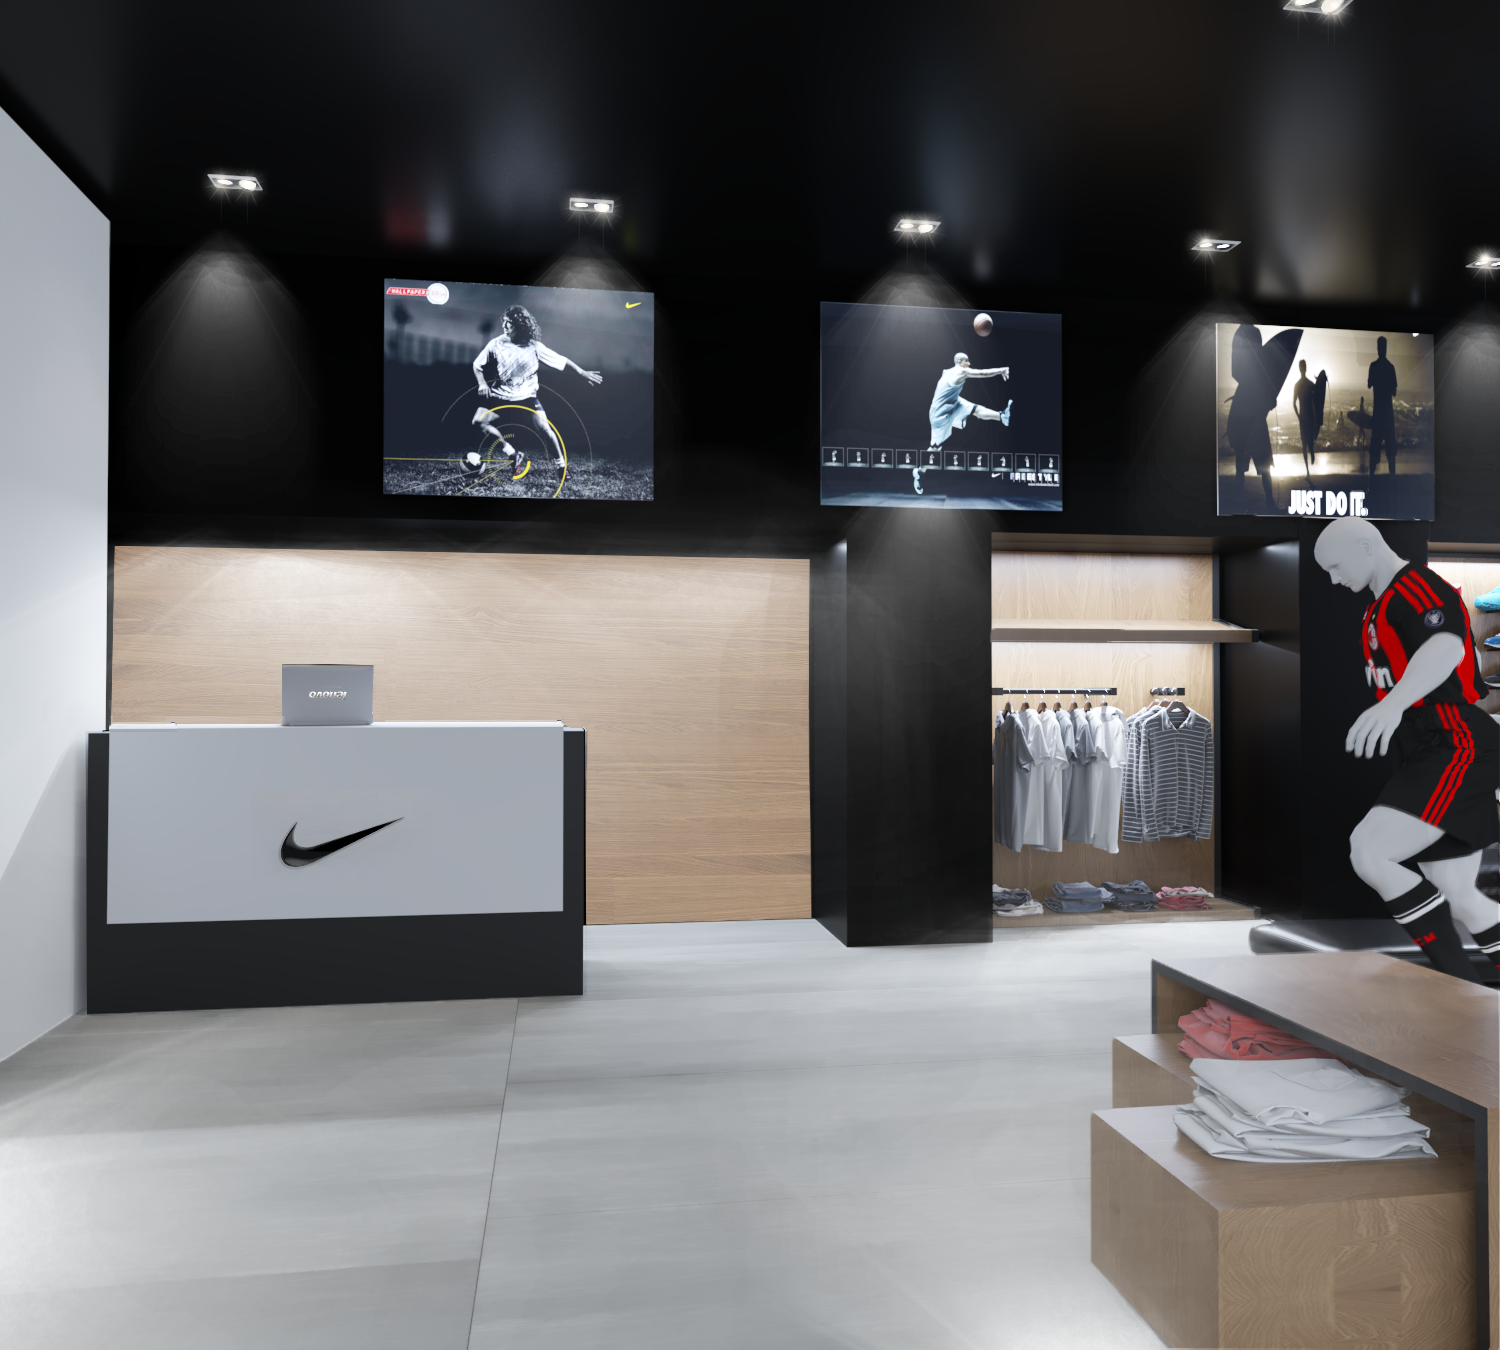 Interior design of the sportswear store